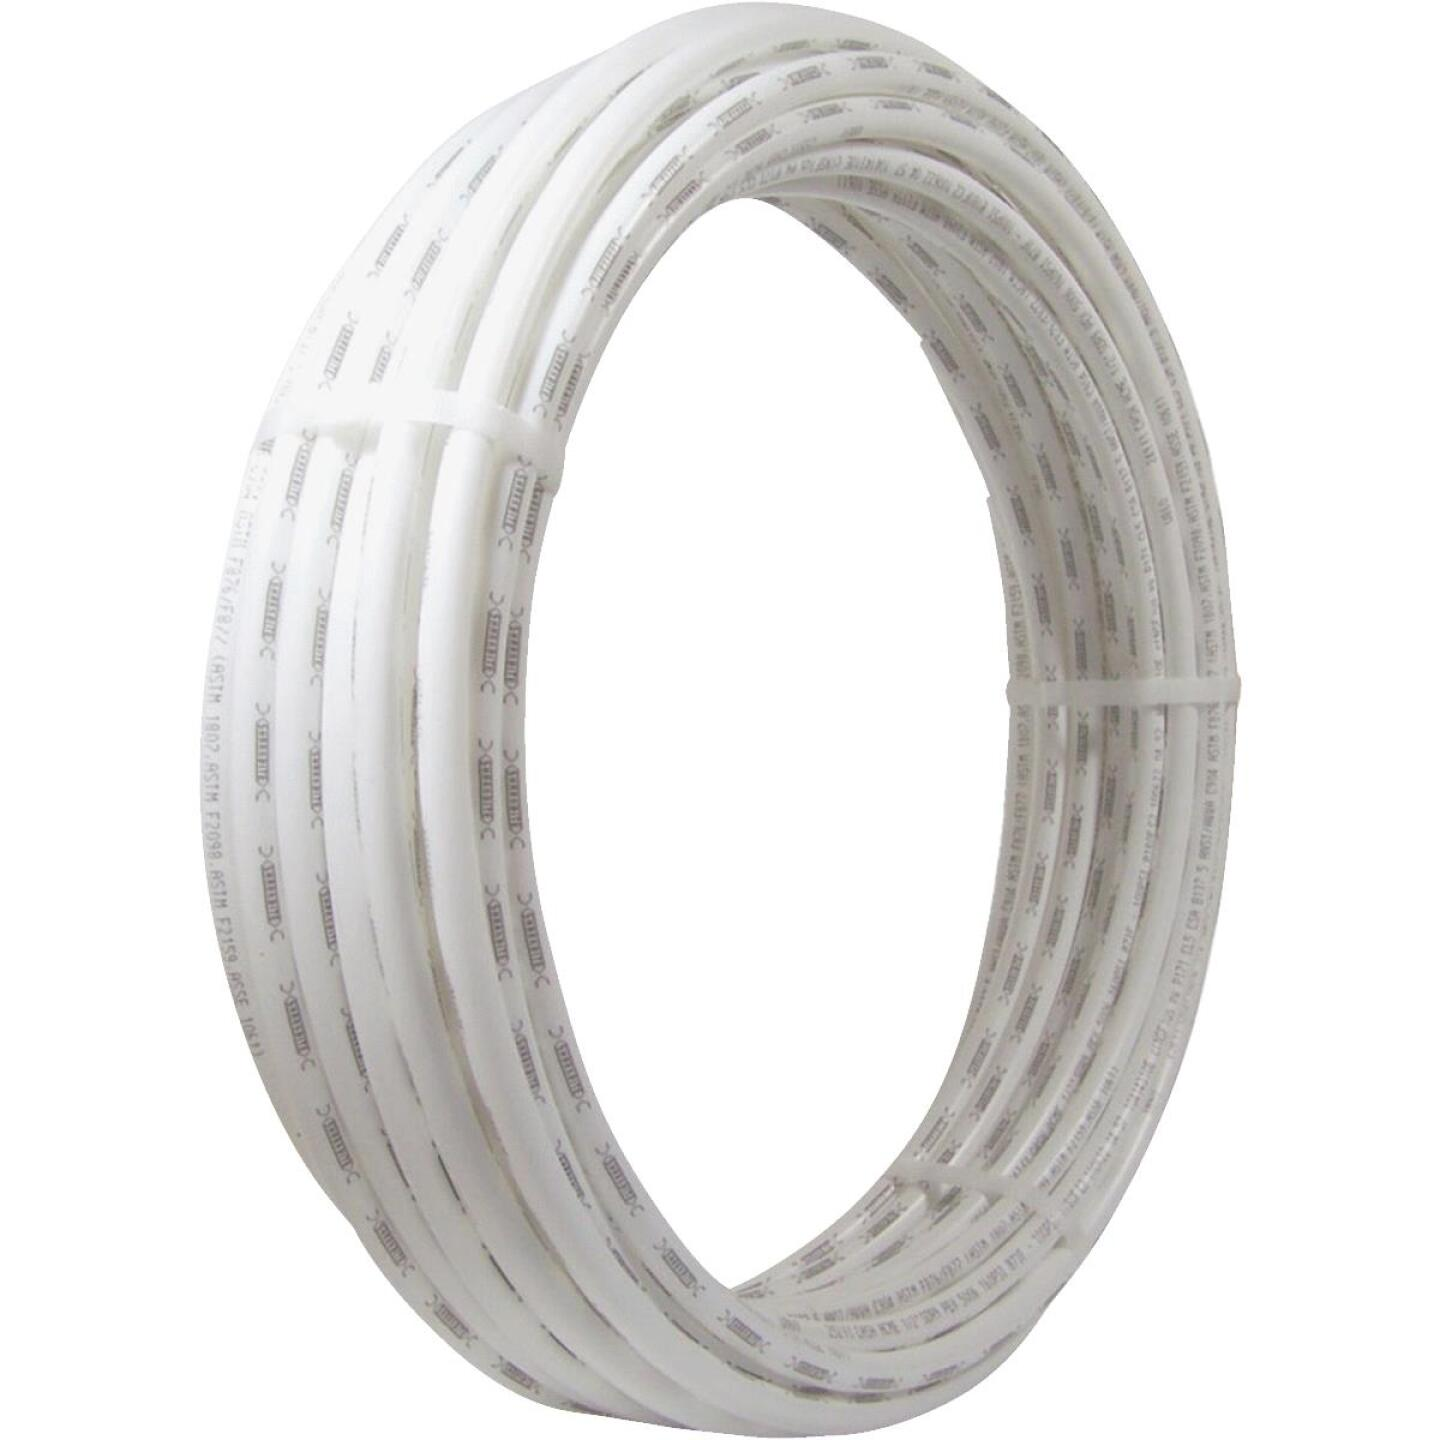 SharkBite 1 In. x 100 Ft. White PEX Pipe Type B Coil Image 1